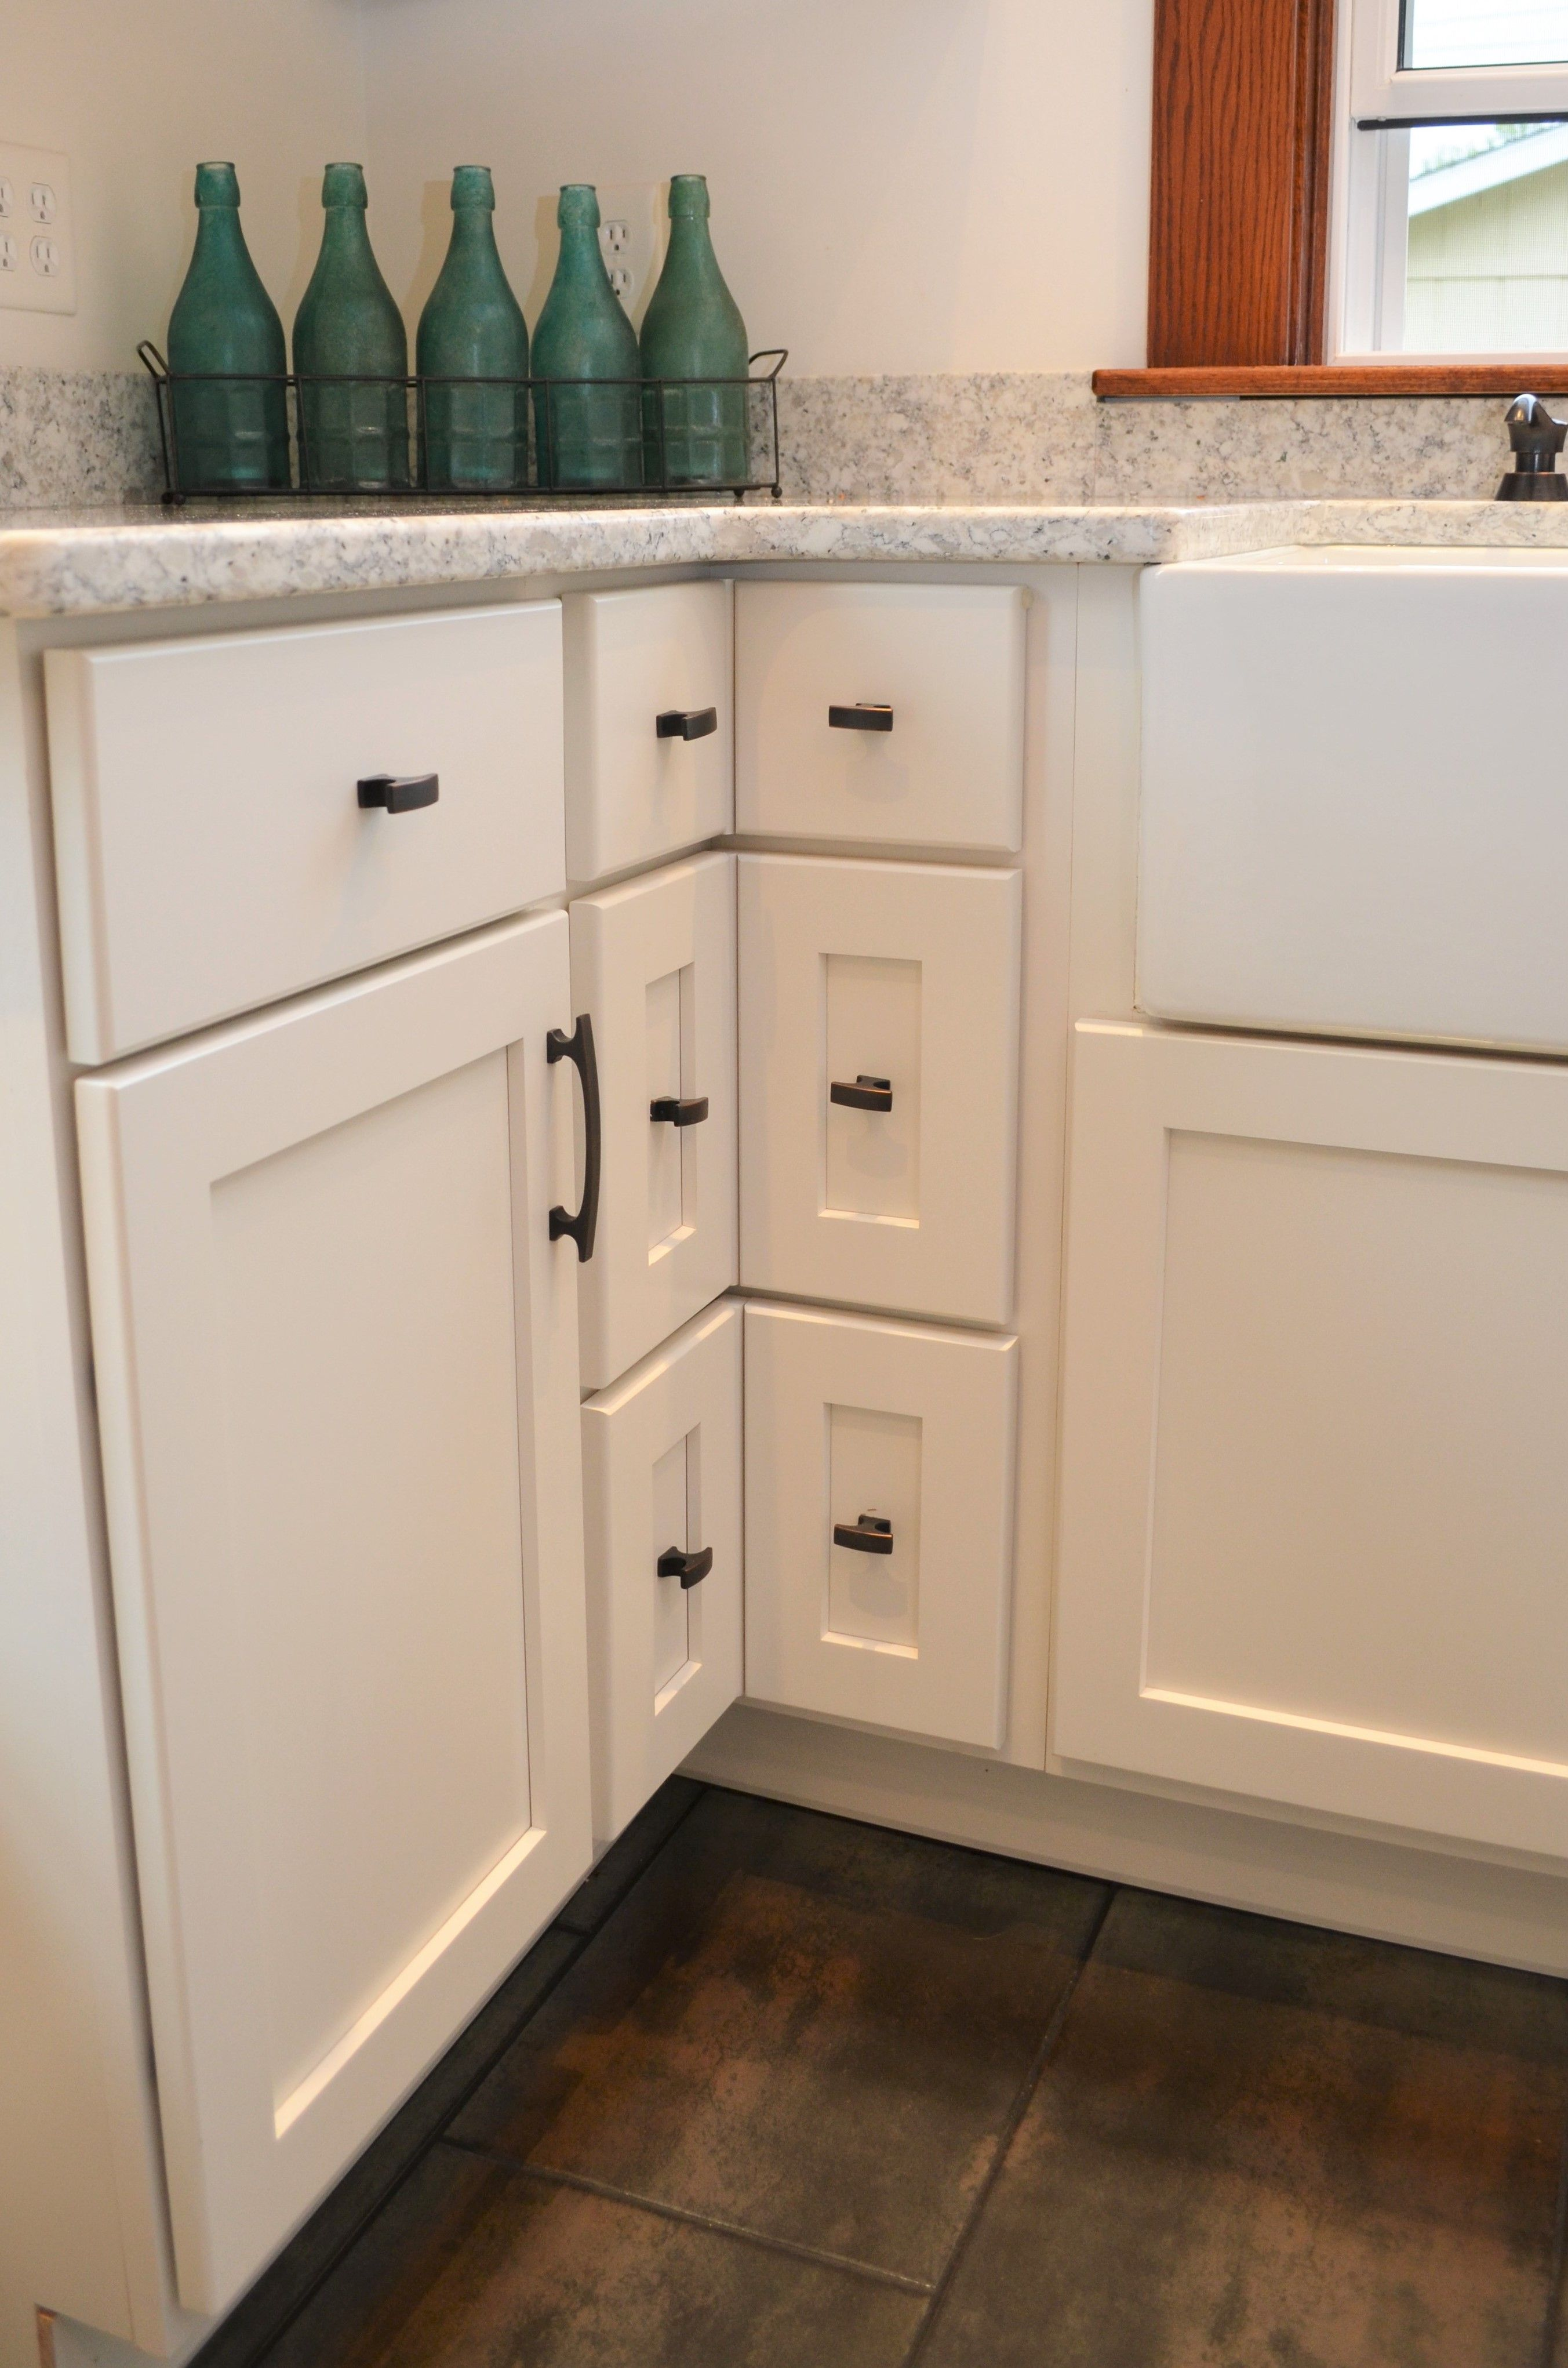 Pin On Knobs And Pulls Bailey S Cabinets